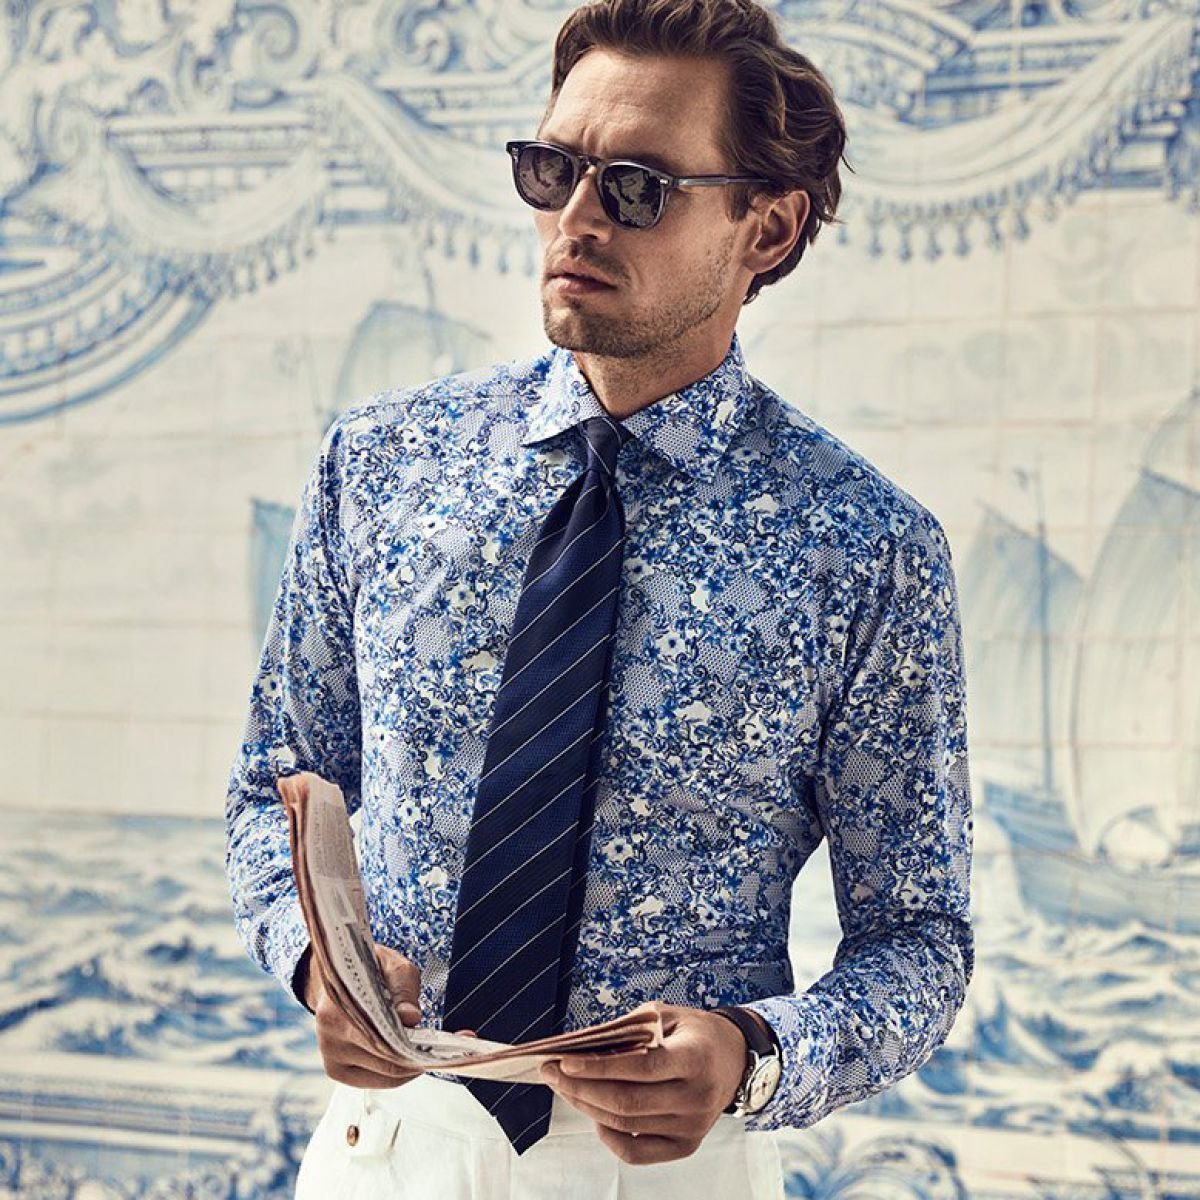 Image result for printed shirt suiting images hd